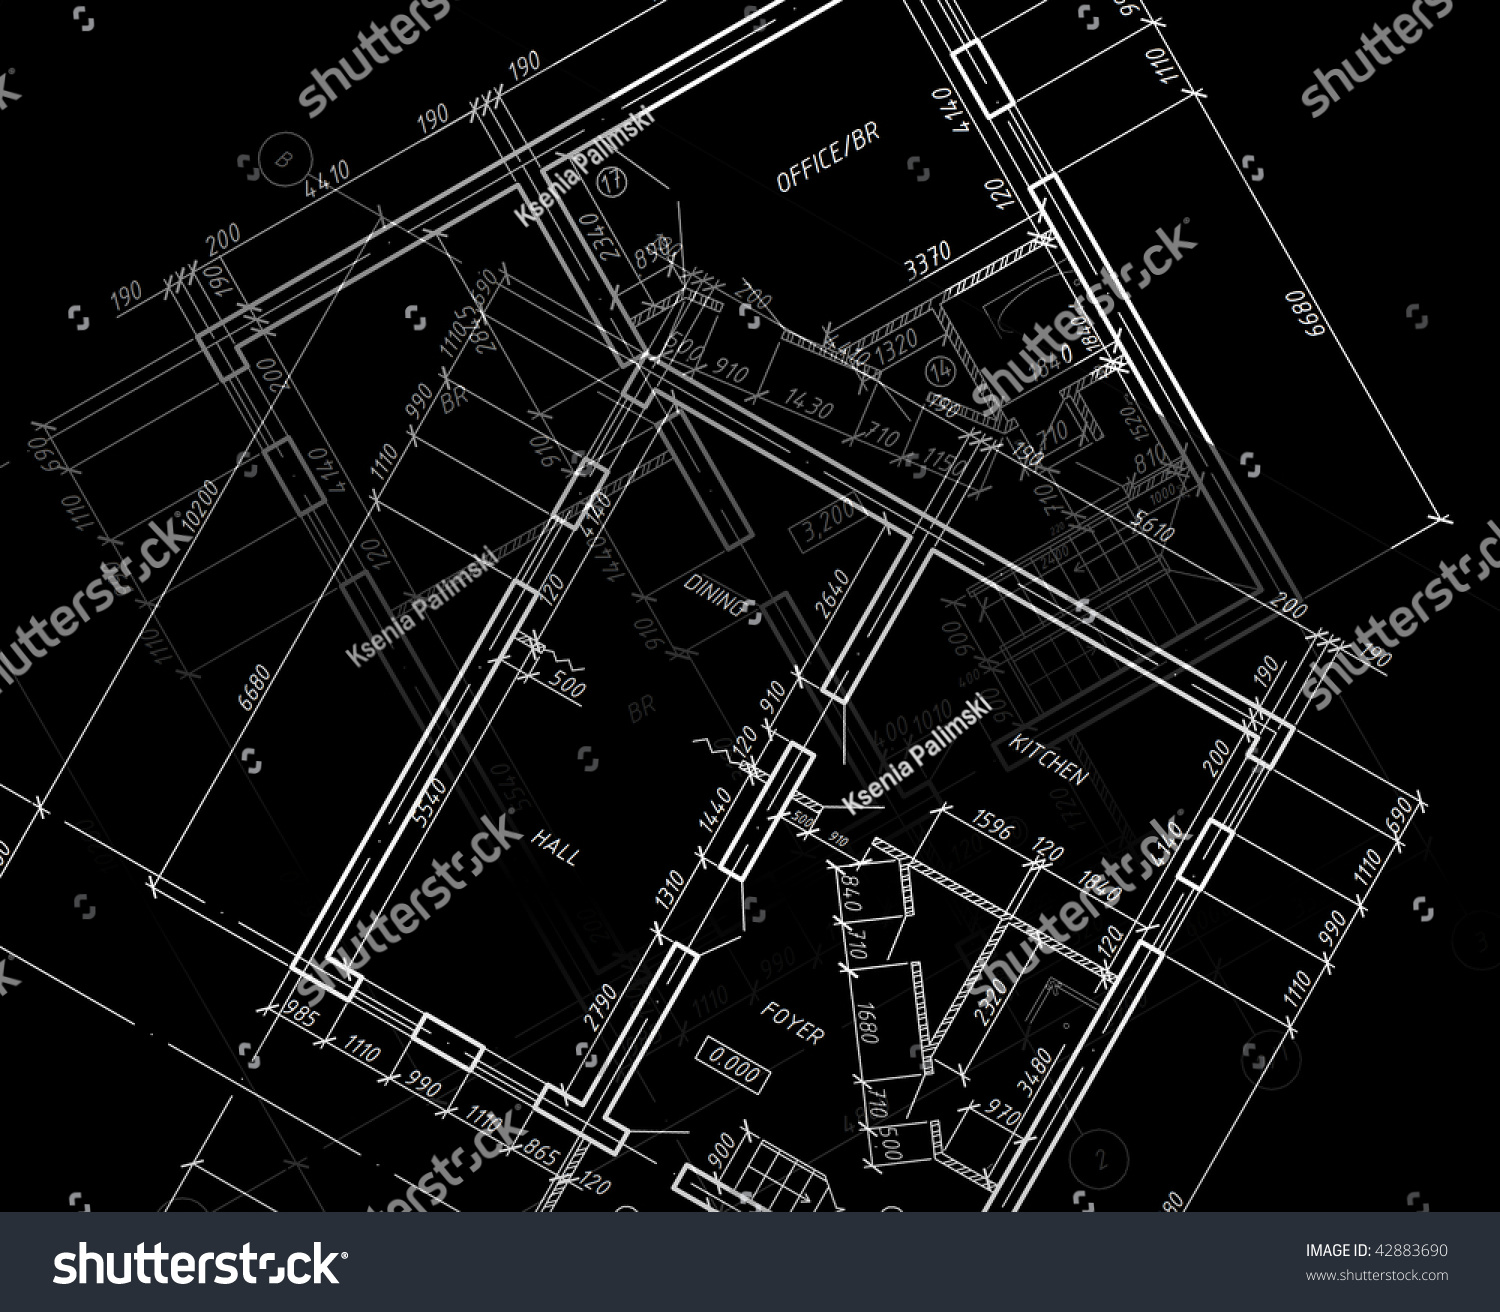 Blueprint cad architectural plan drawing white stock for Architecture blueprint